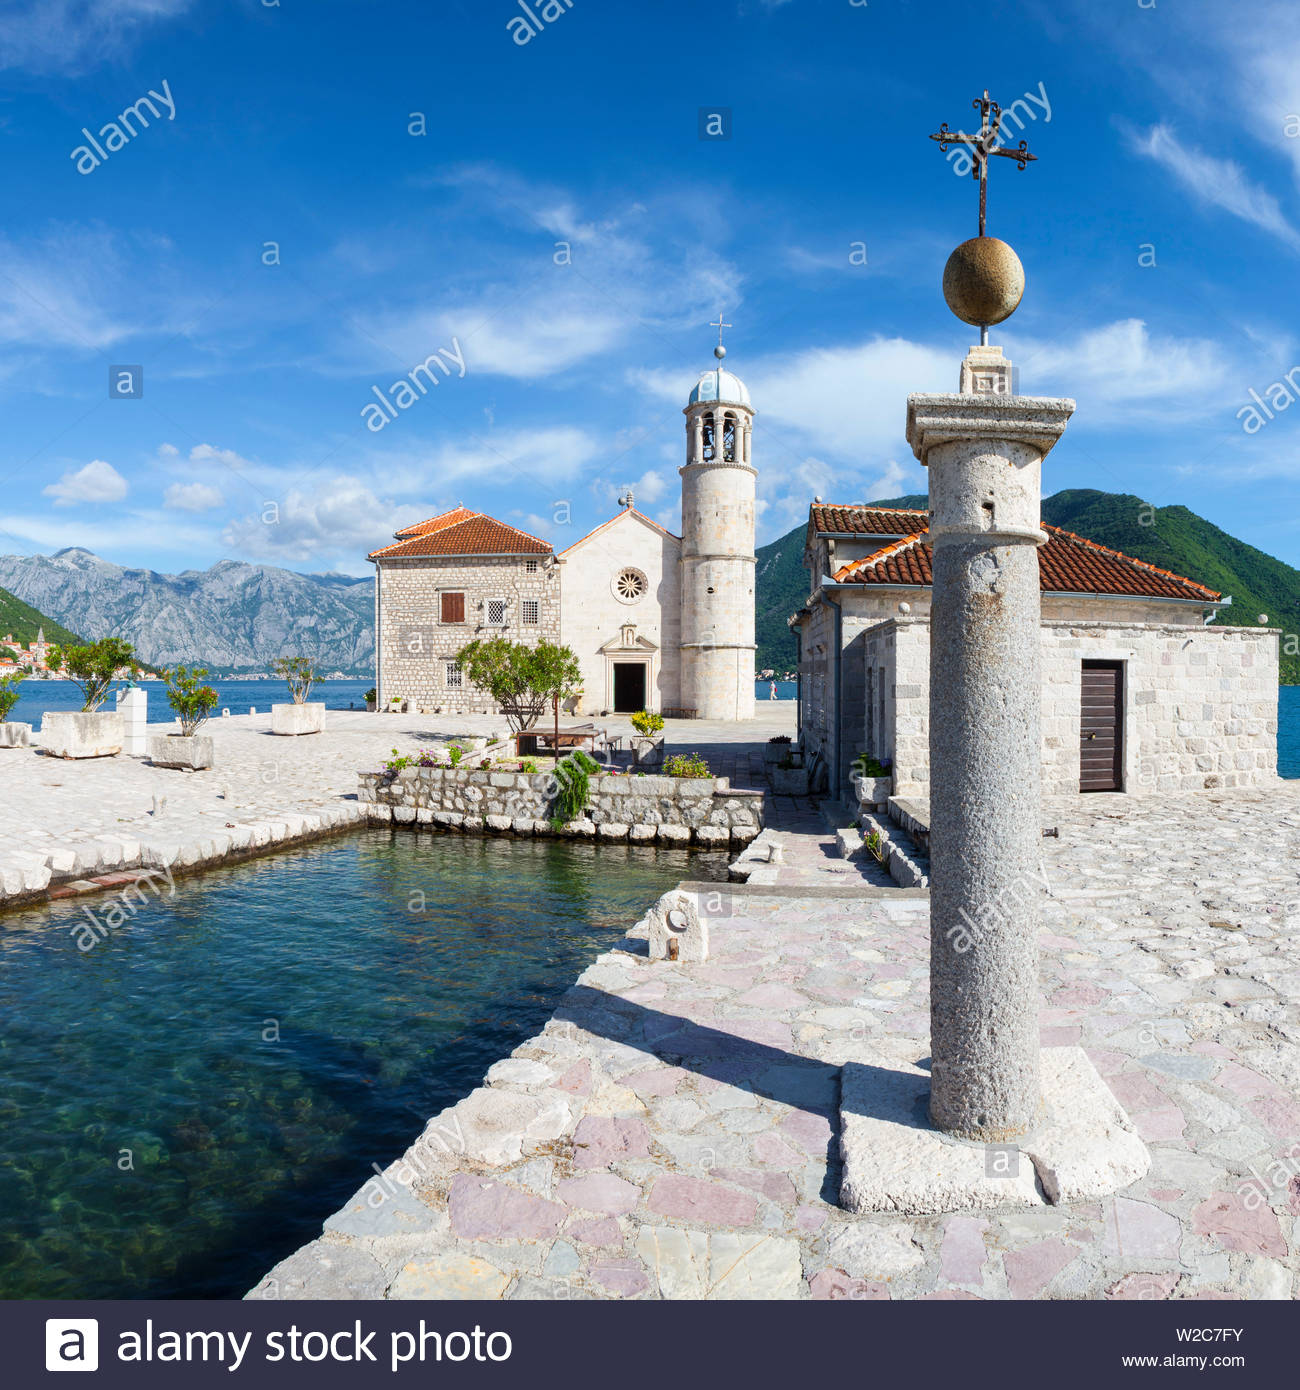 Church of Our Lady of the Rocks, Our Lady of the Rocks Island, Perast, Bay of Kotorska, Montenegro - Stock Image